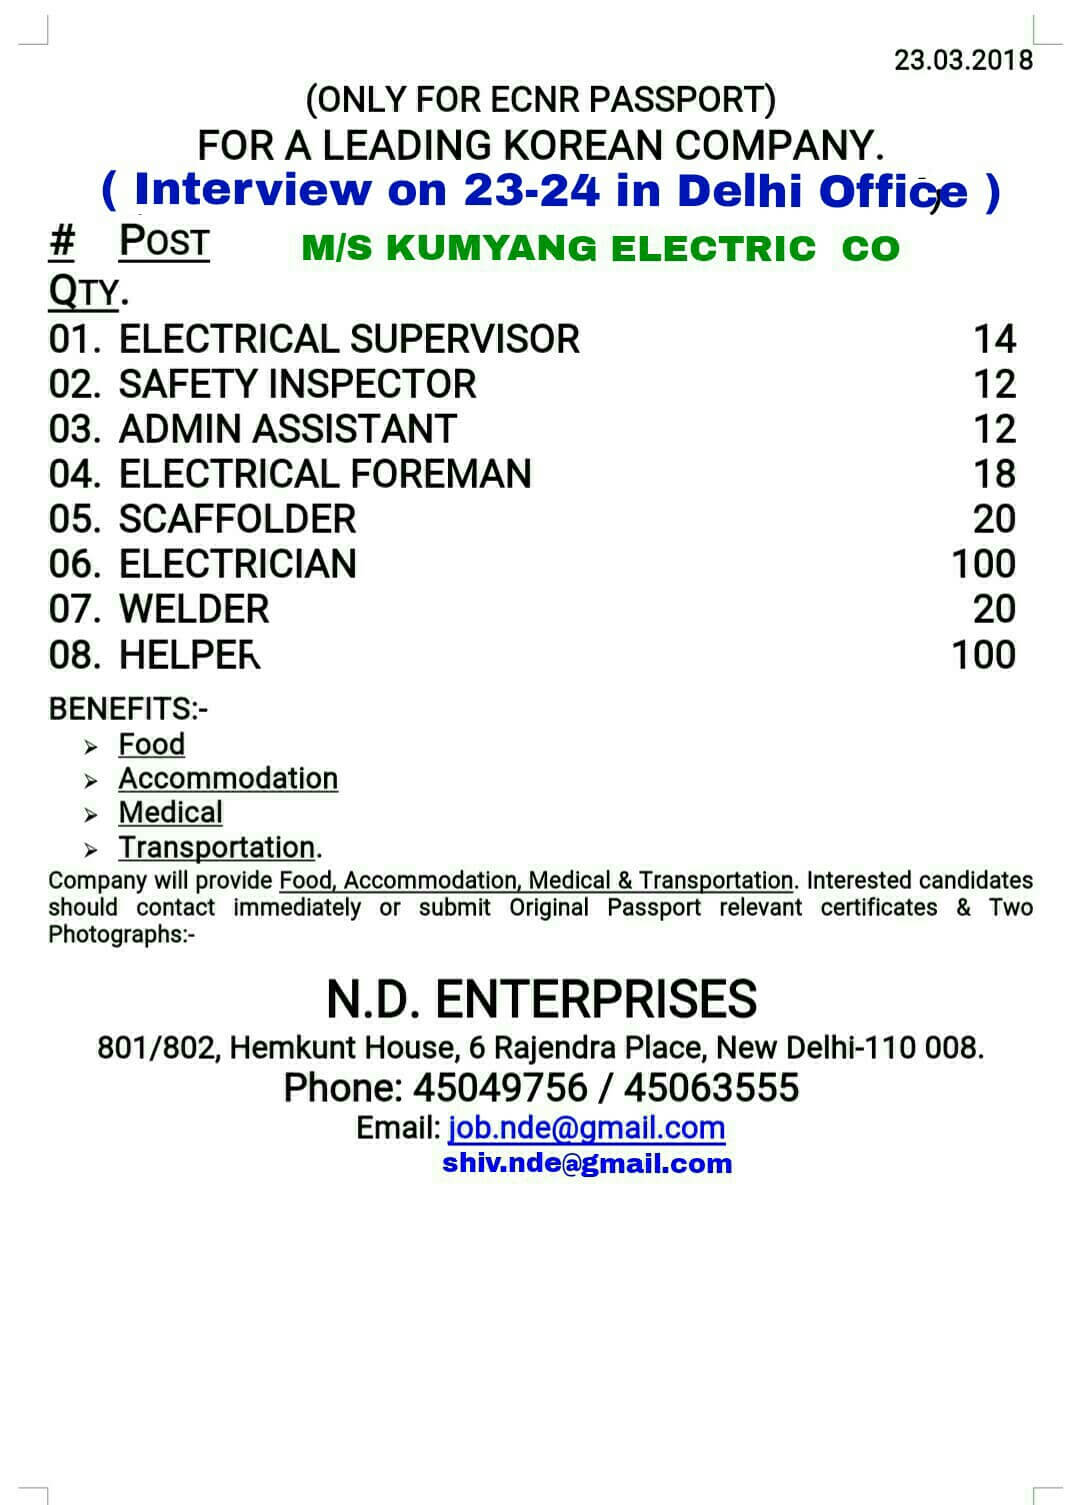 Walking Interview for KUMYANG ELECTRIC CO